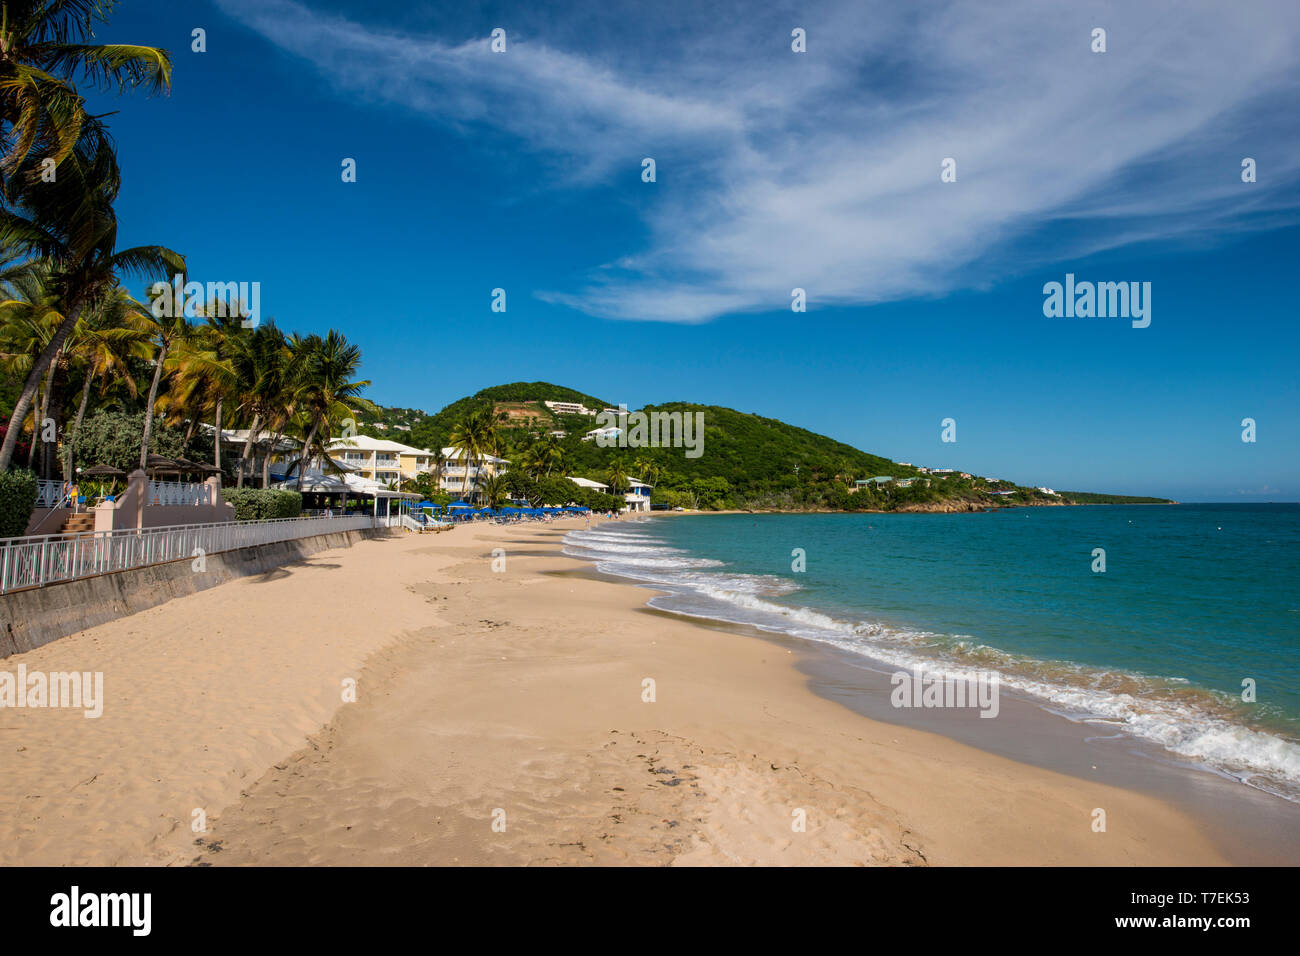 Marriott's Frenchman's Reef & Morning Star Beach Resort, Morningstar Beach, St. Thomas, US Virgin Islands. Stock Photo